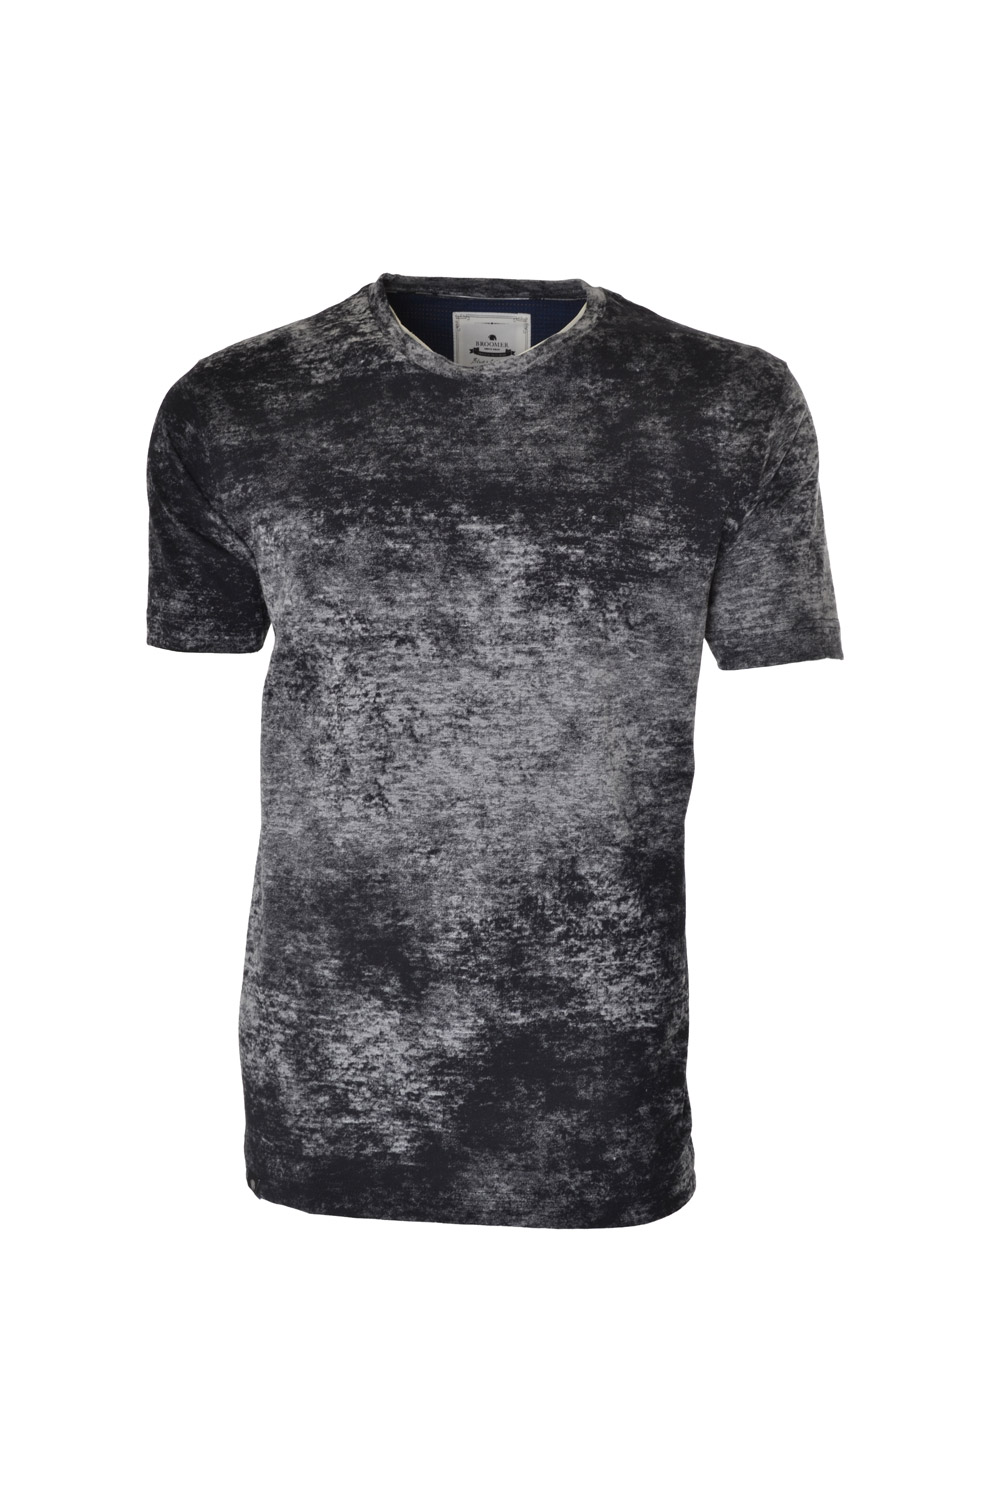 CAMISETA MC BLUES SUPER SLIM ALGODAO GOLA C TEXTURIZADO PRETO